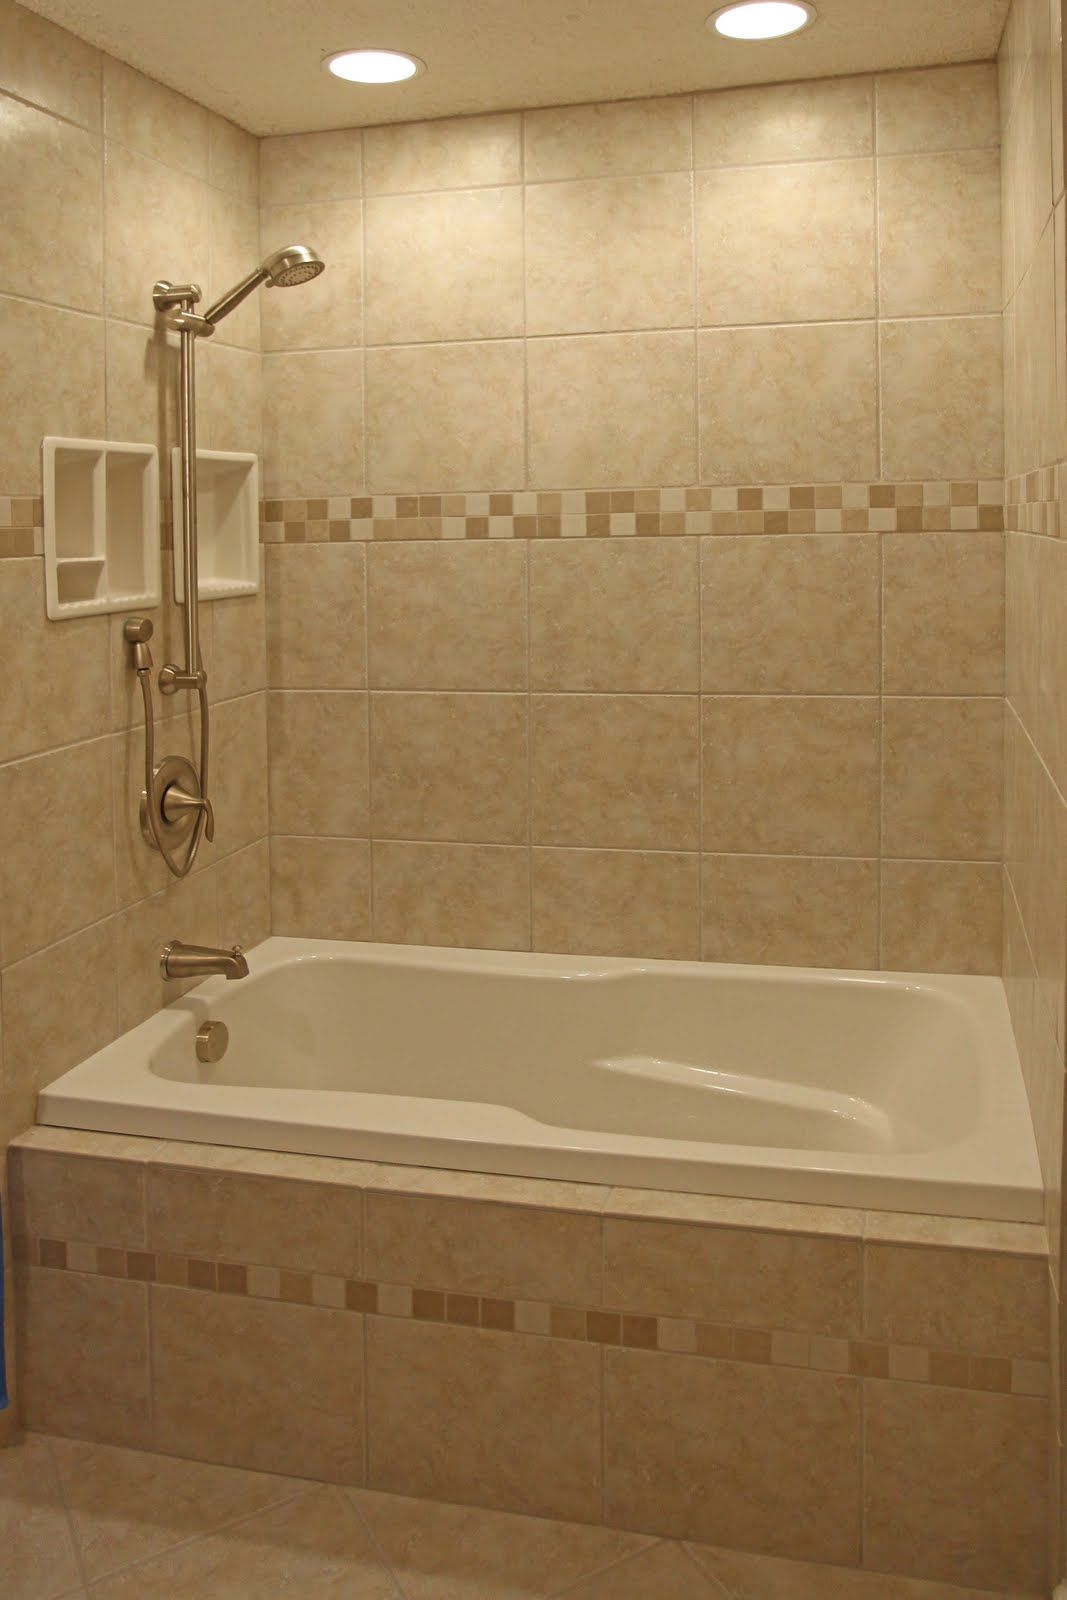 Washroom Tiles Shower And Bath Remodel Bathroom Shower Design Ideas Ceramic